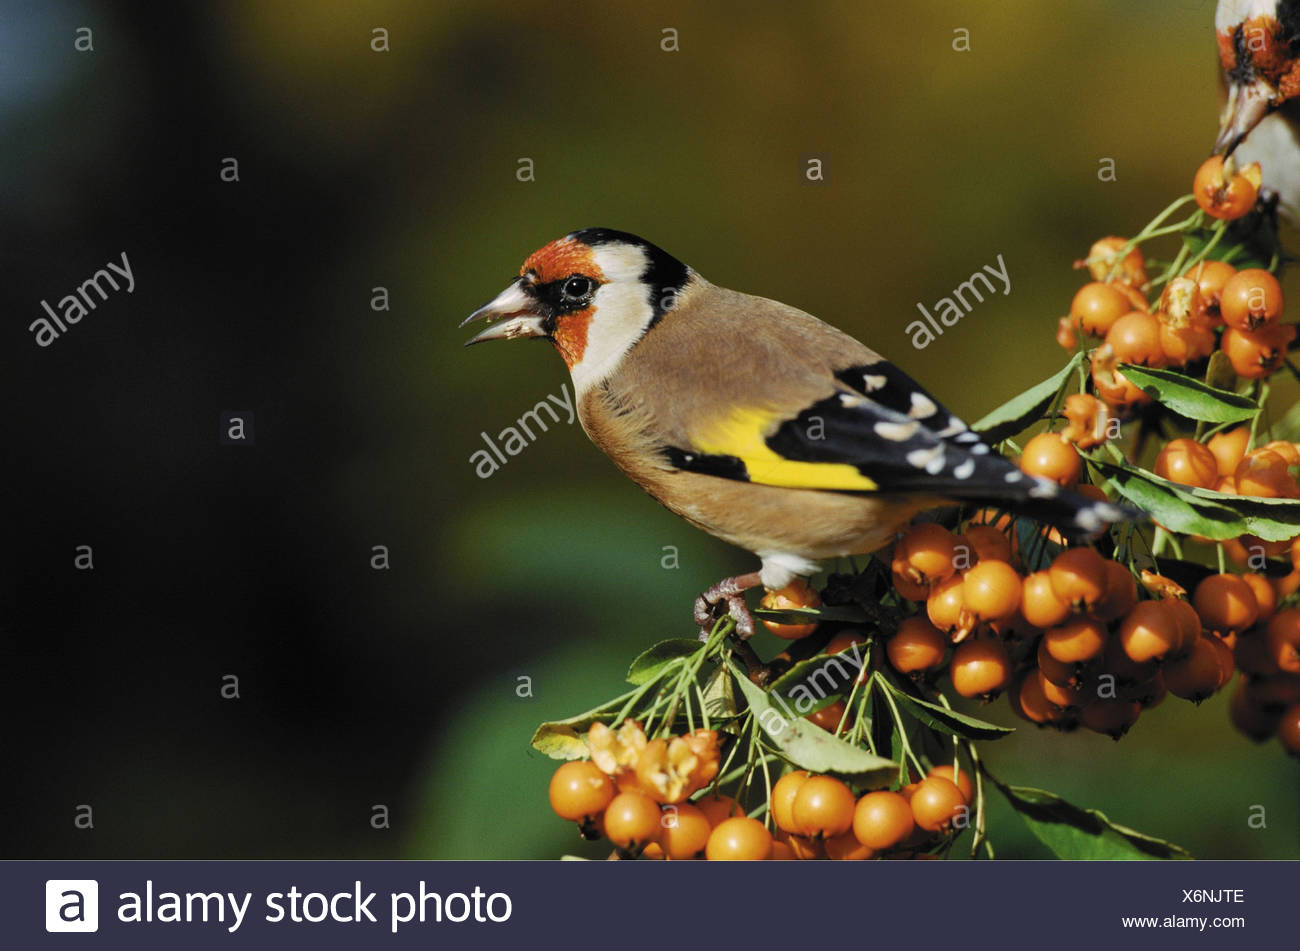 carduelis carduelis / goldfinch - Stock Image